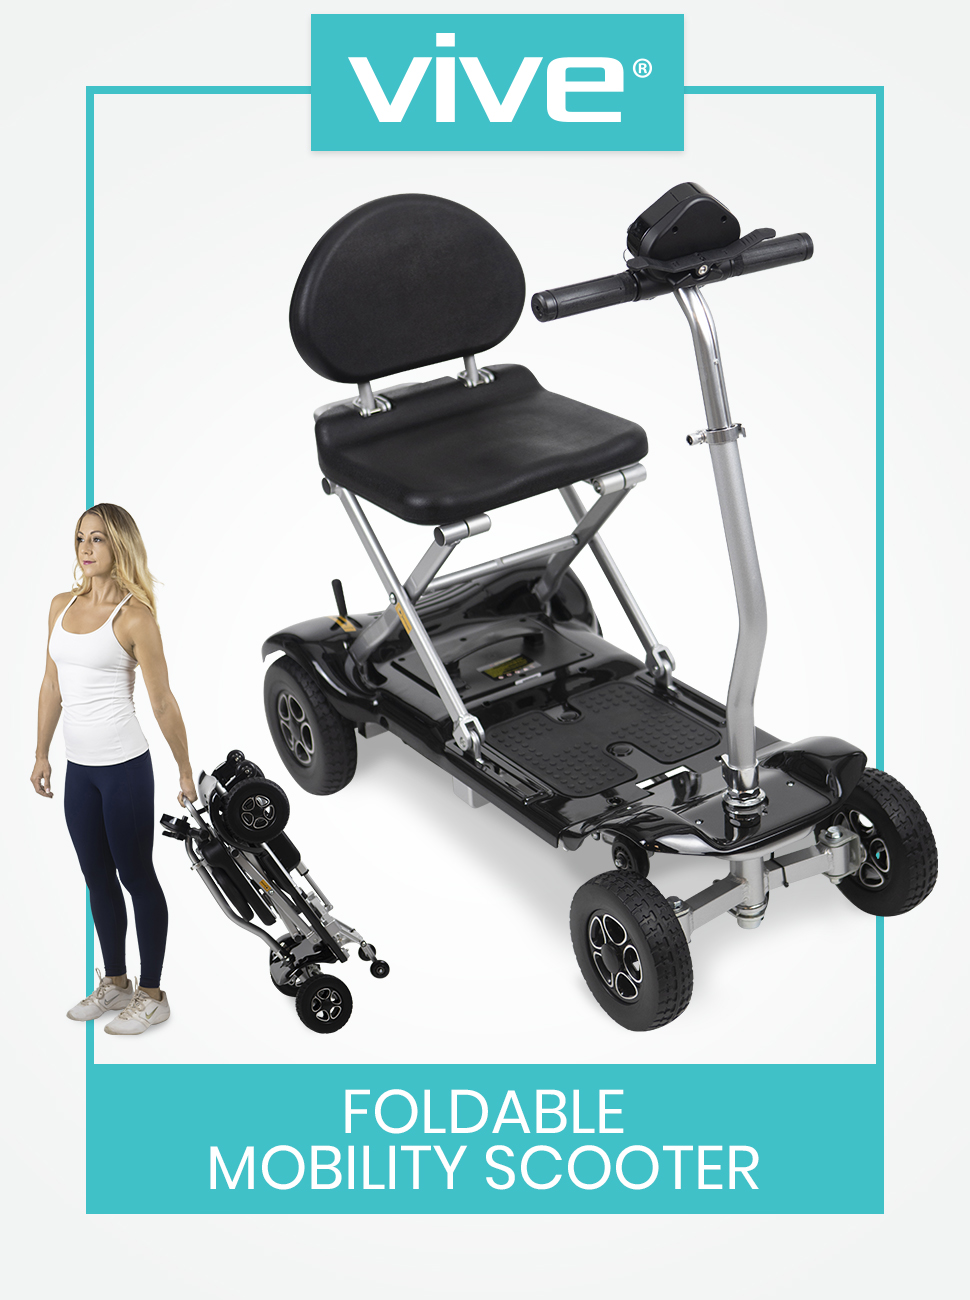 Foldable Mobility Scooter - Electric Powered Portable Wheelchair - 4 Wheel Light and Compact Mobile